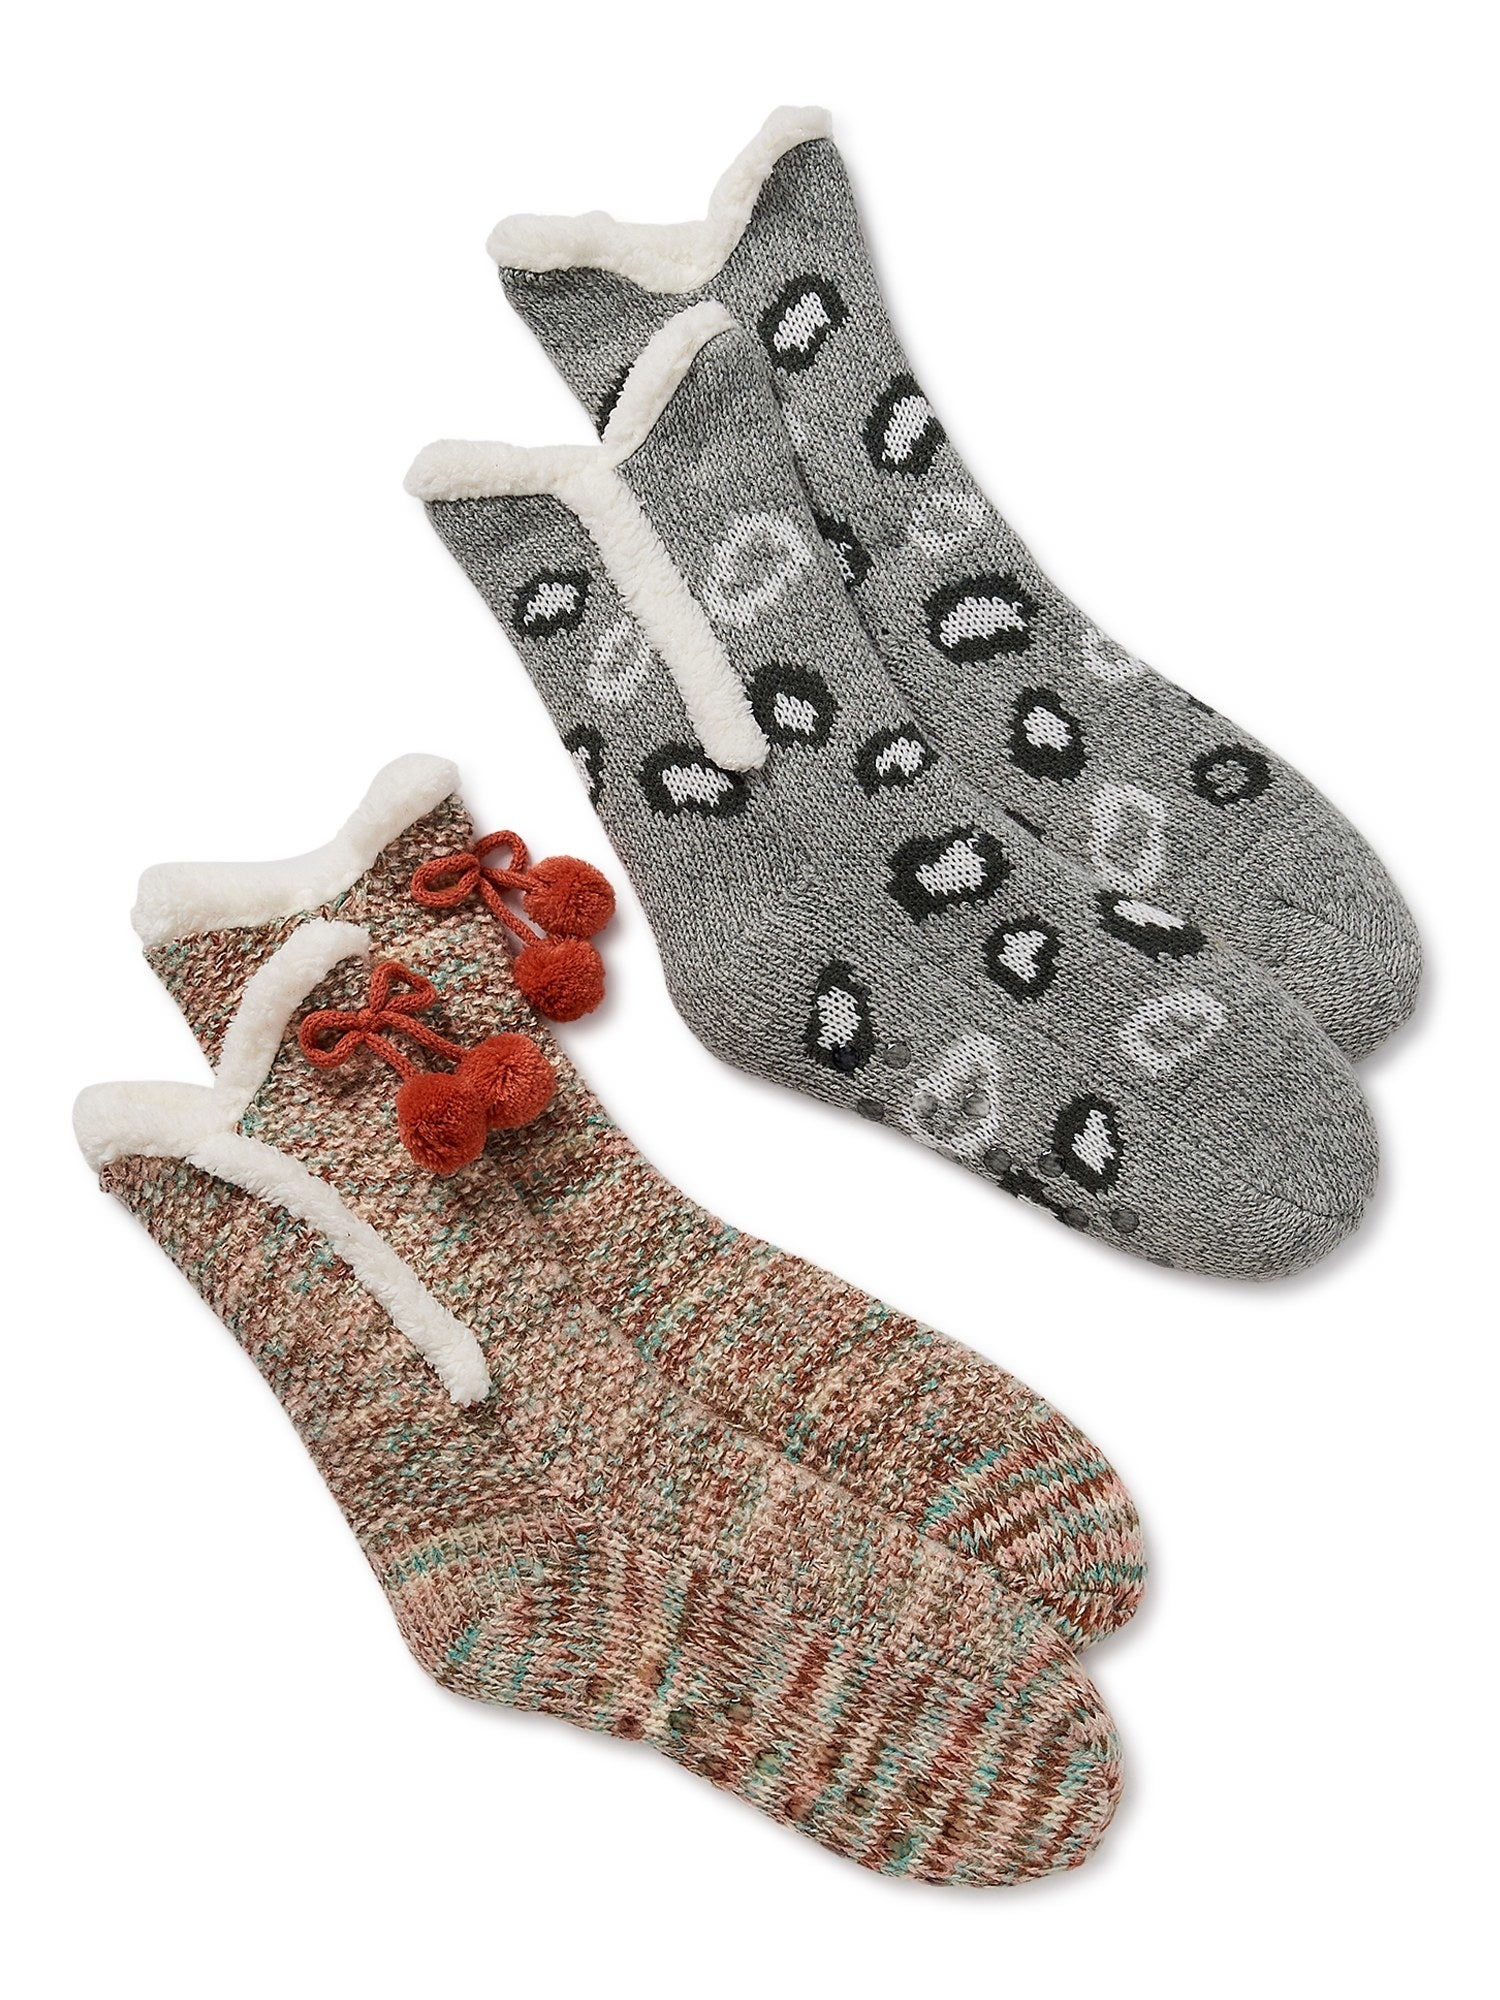 Two pairs of the cozy socks with a plush lining in a multi-colored print and a black and grey leopard print